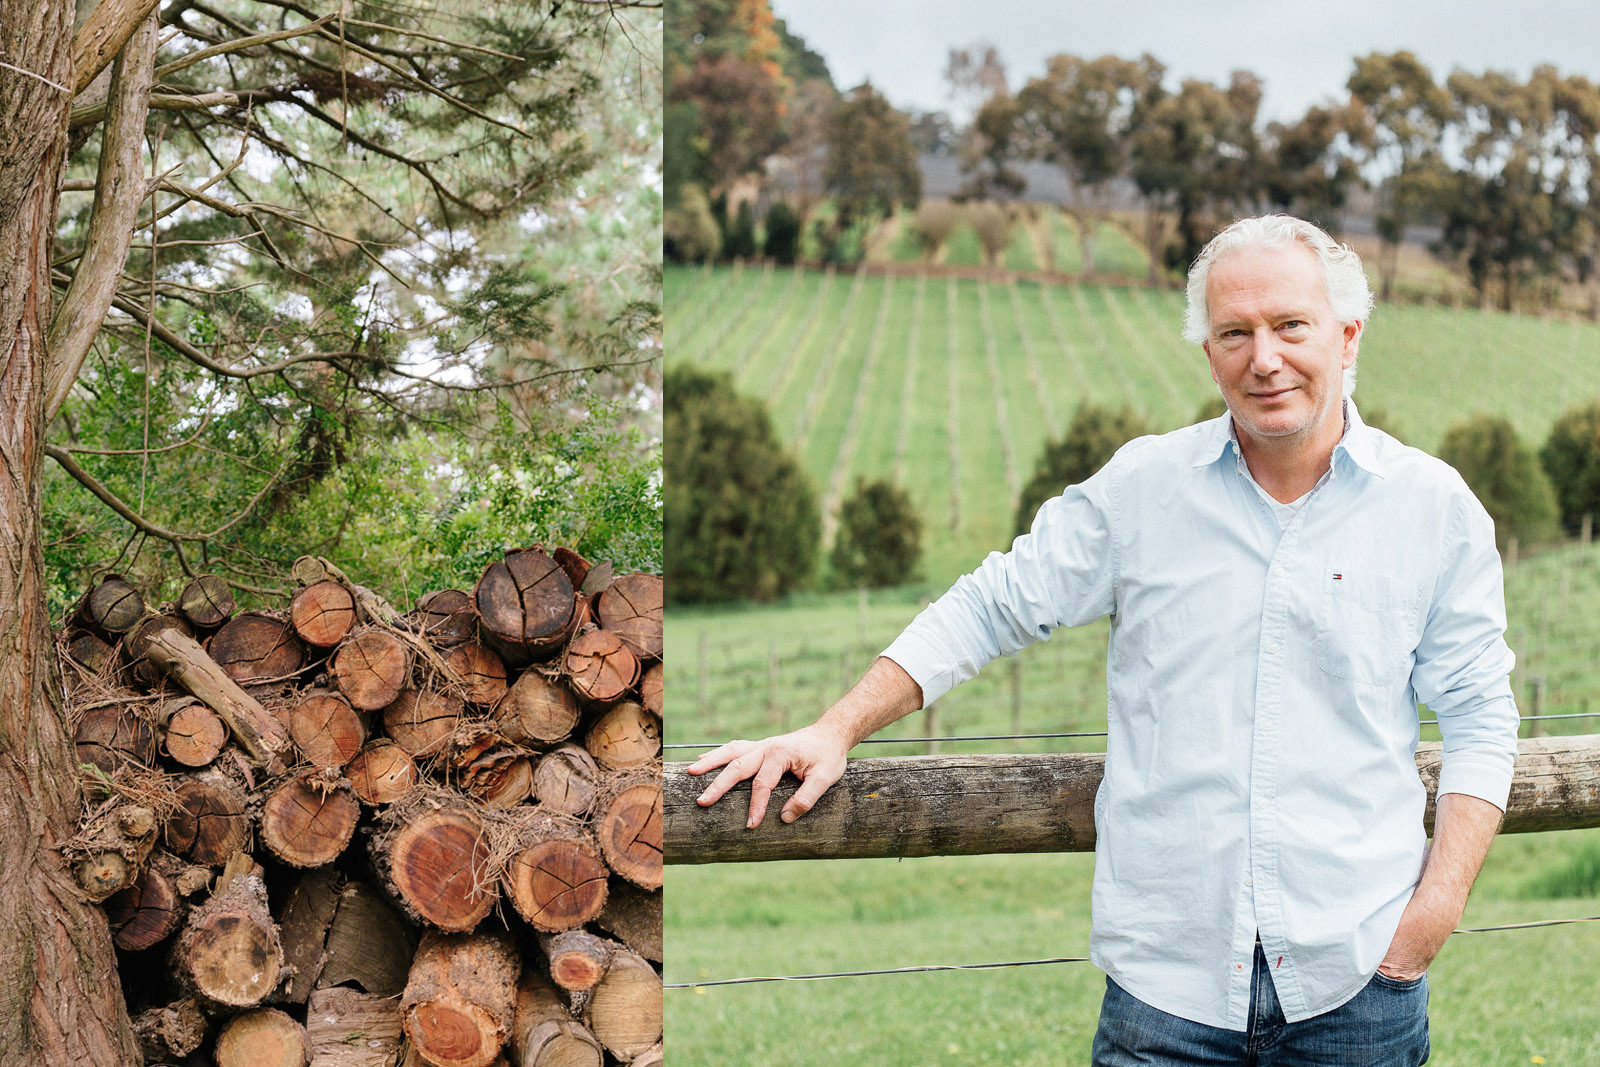 Fans of cool-climate grape varietals such as Pinot Noir and Chardonnay will be spoilt for choice touring the Mornington Peninsula. Michael Lee, above, runs a great cellar door and relaxed, rustic dining at his winery in Red Hill.